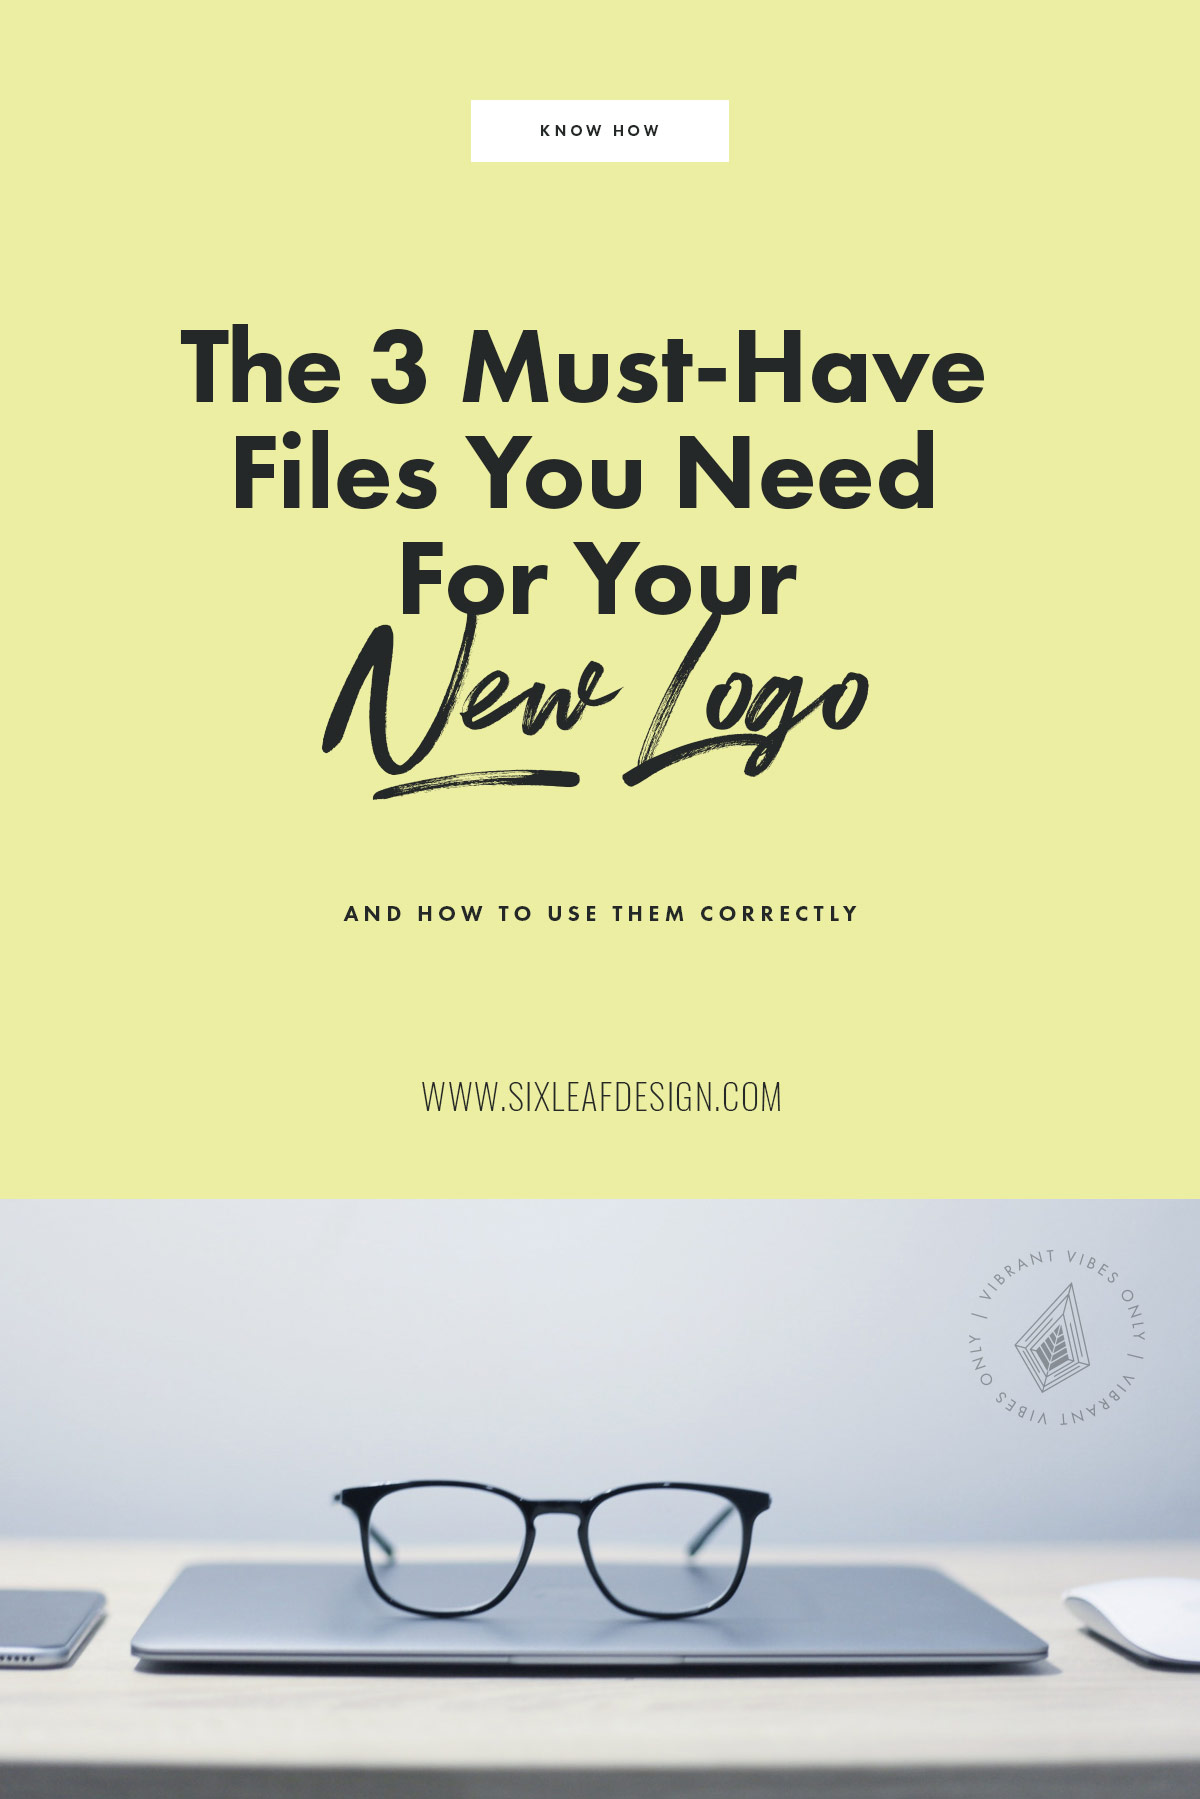 The 3 Must-Have Files You Need to Use Your New Logo To Its Full Extent | What files to ask your designer for when you get a logo?